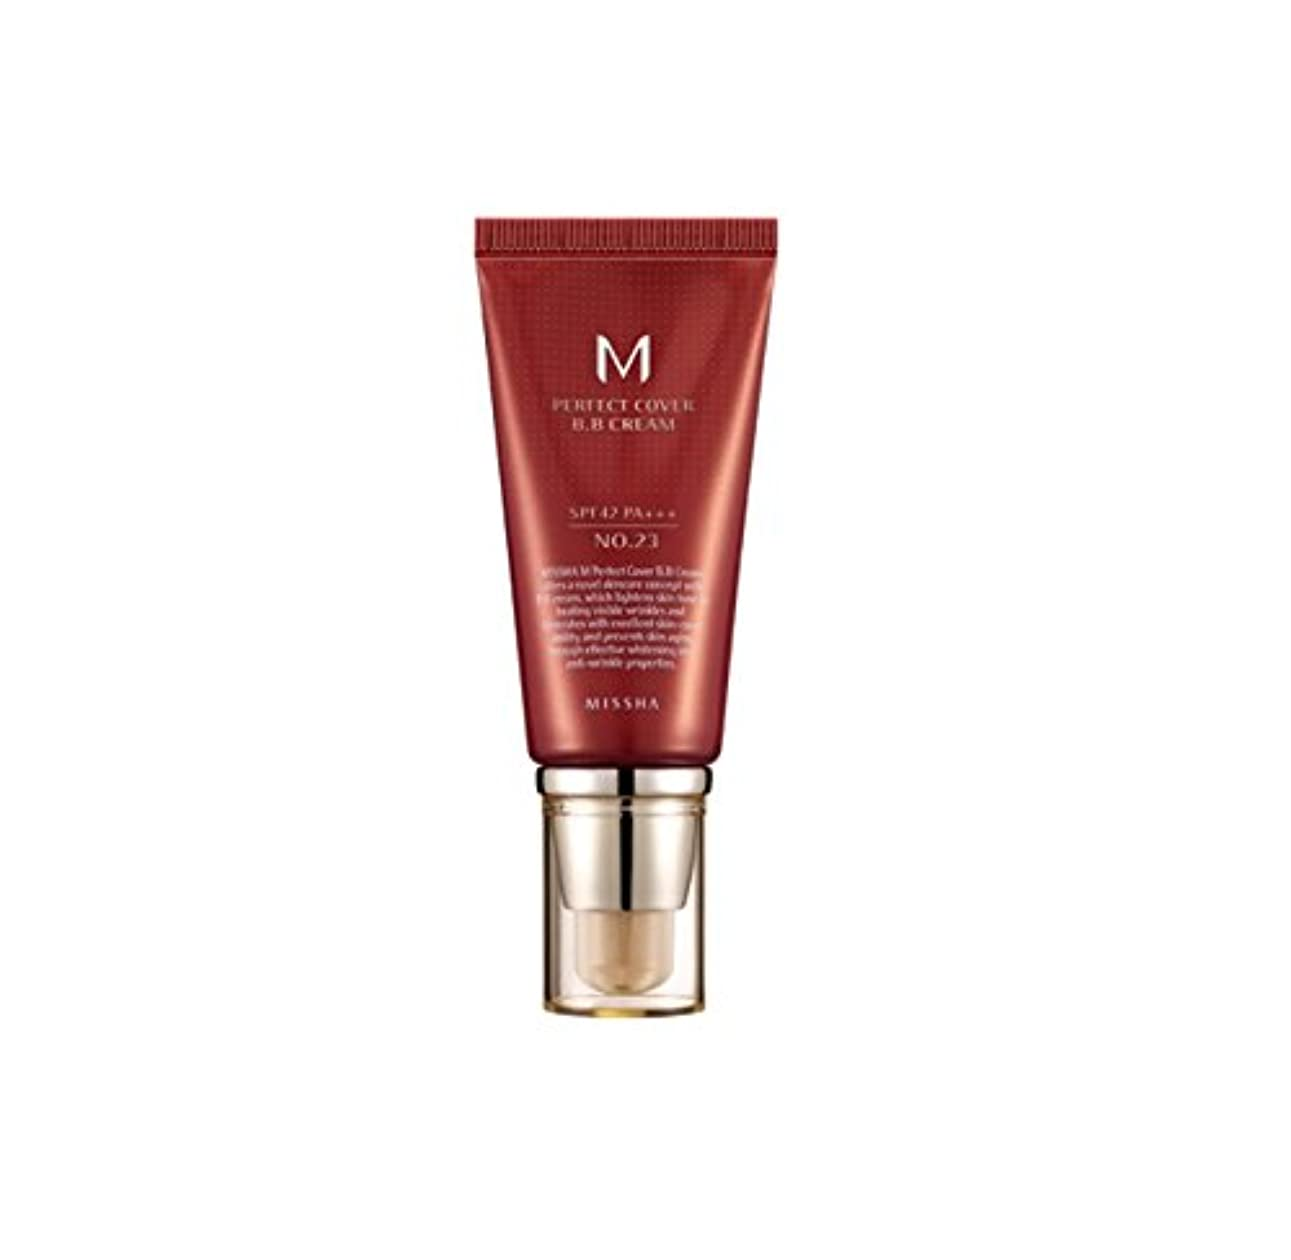 地球ジェット投げるMISSHA M Perfect Cover BB Cream No.23 Natural Beige SPF42 PA+++ (50ml)